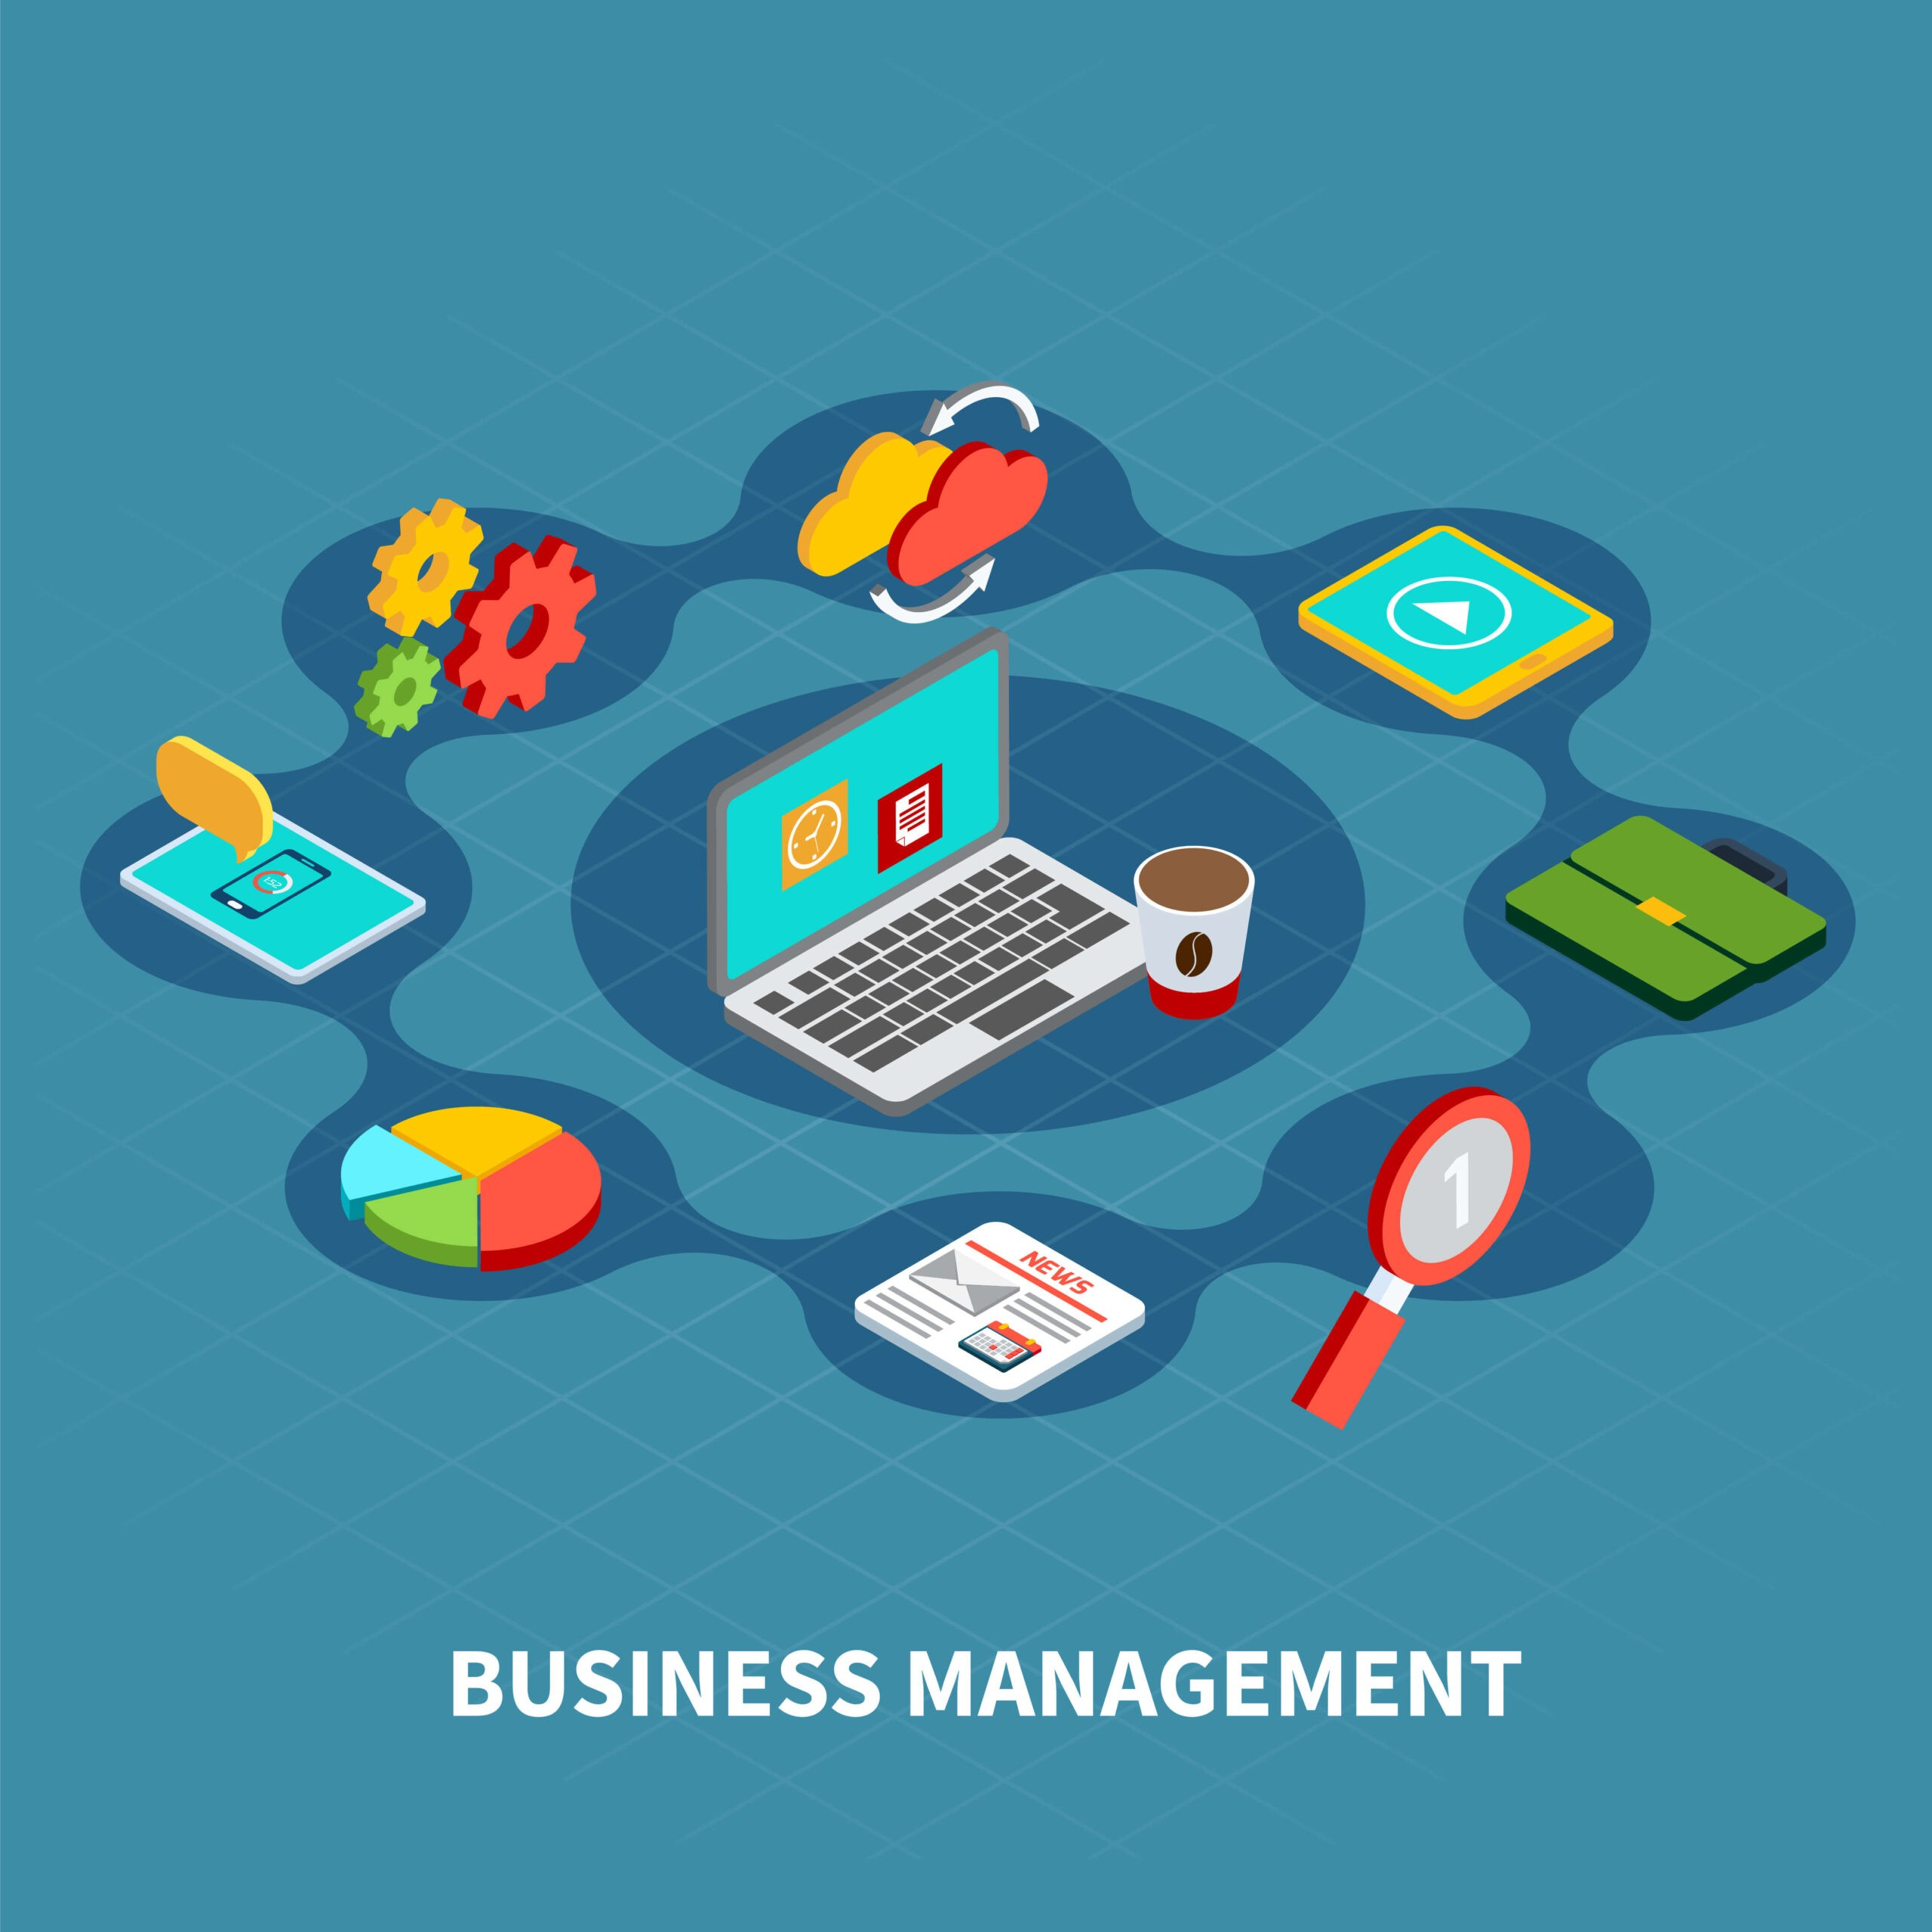 Cloud Business Management Software